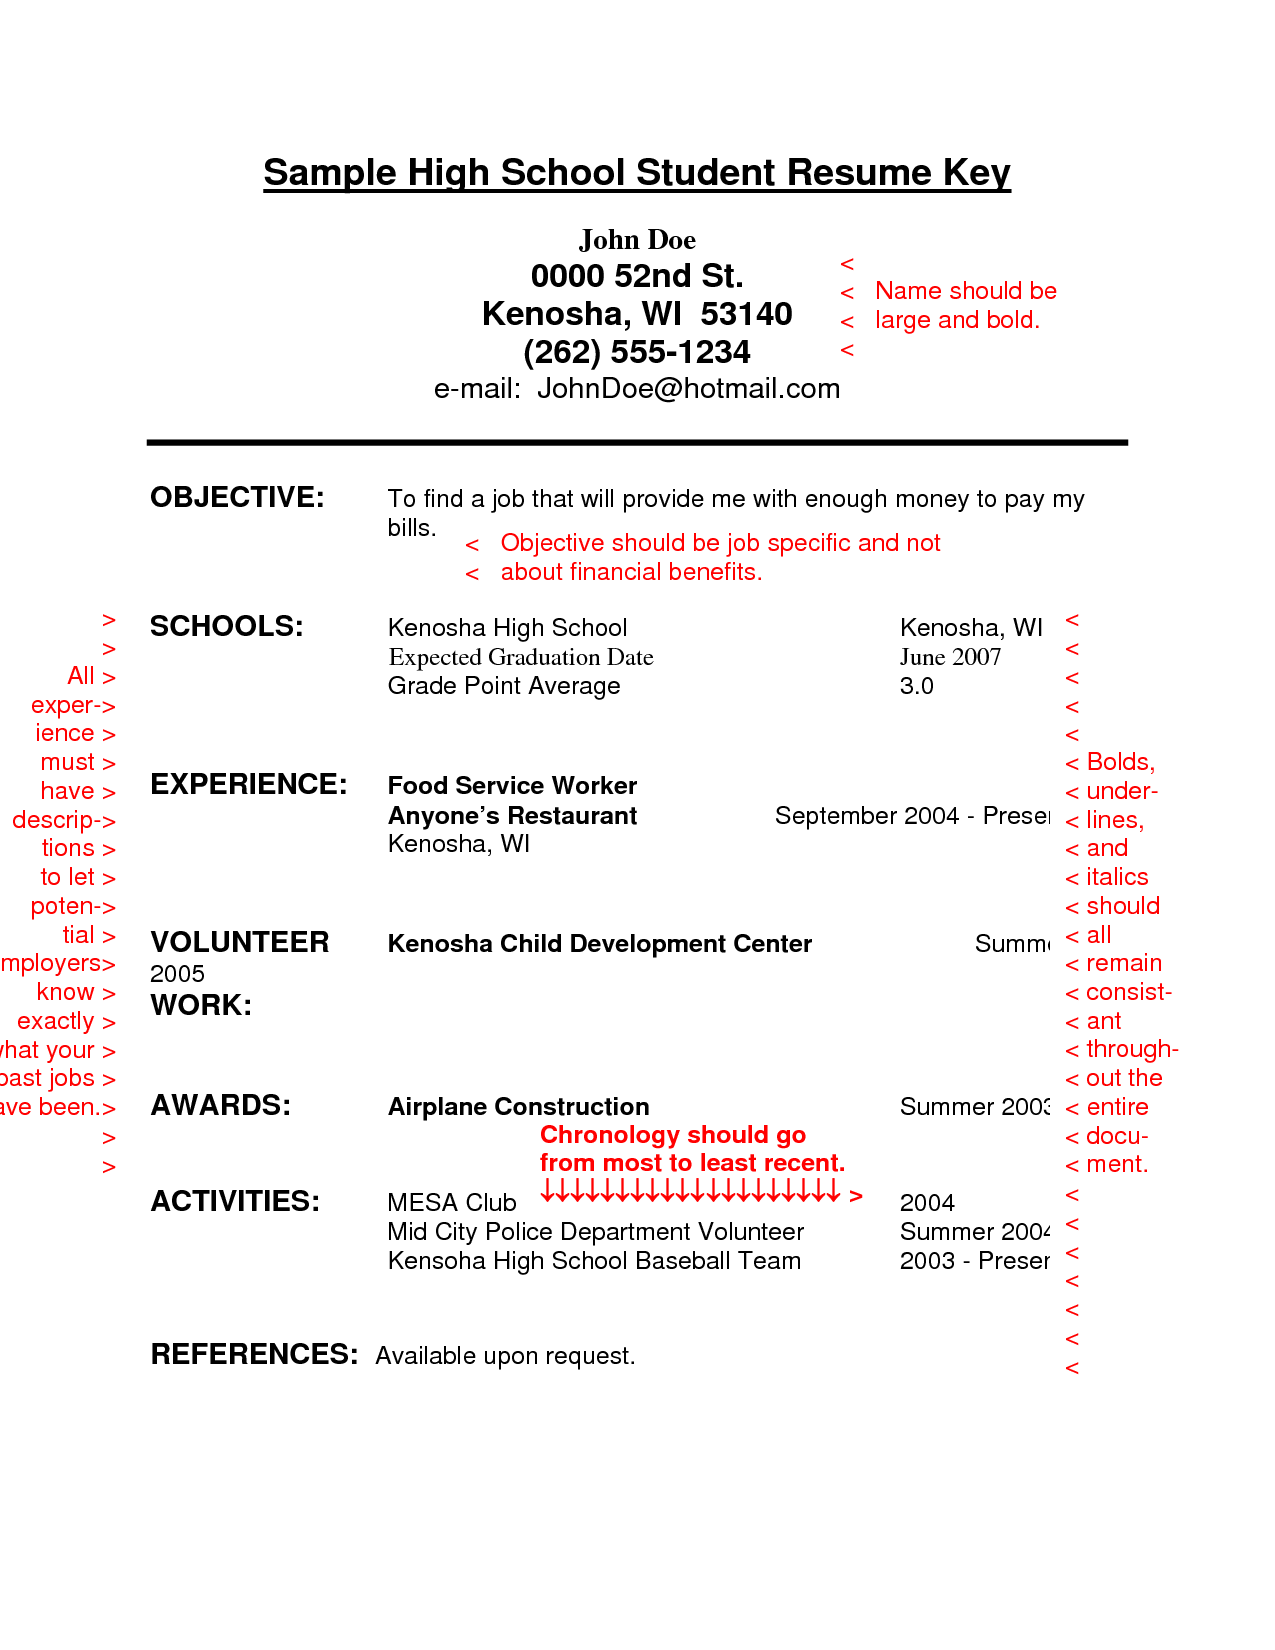 Resume example for high school student